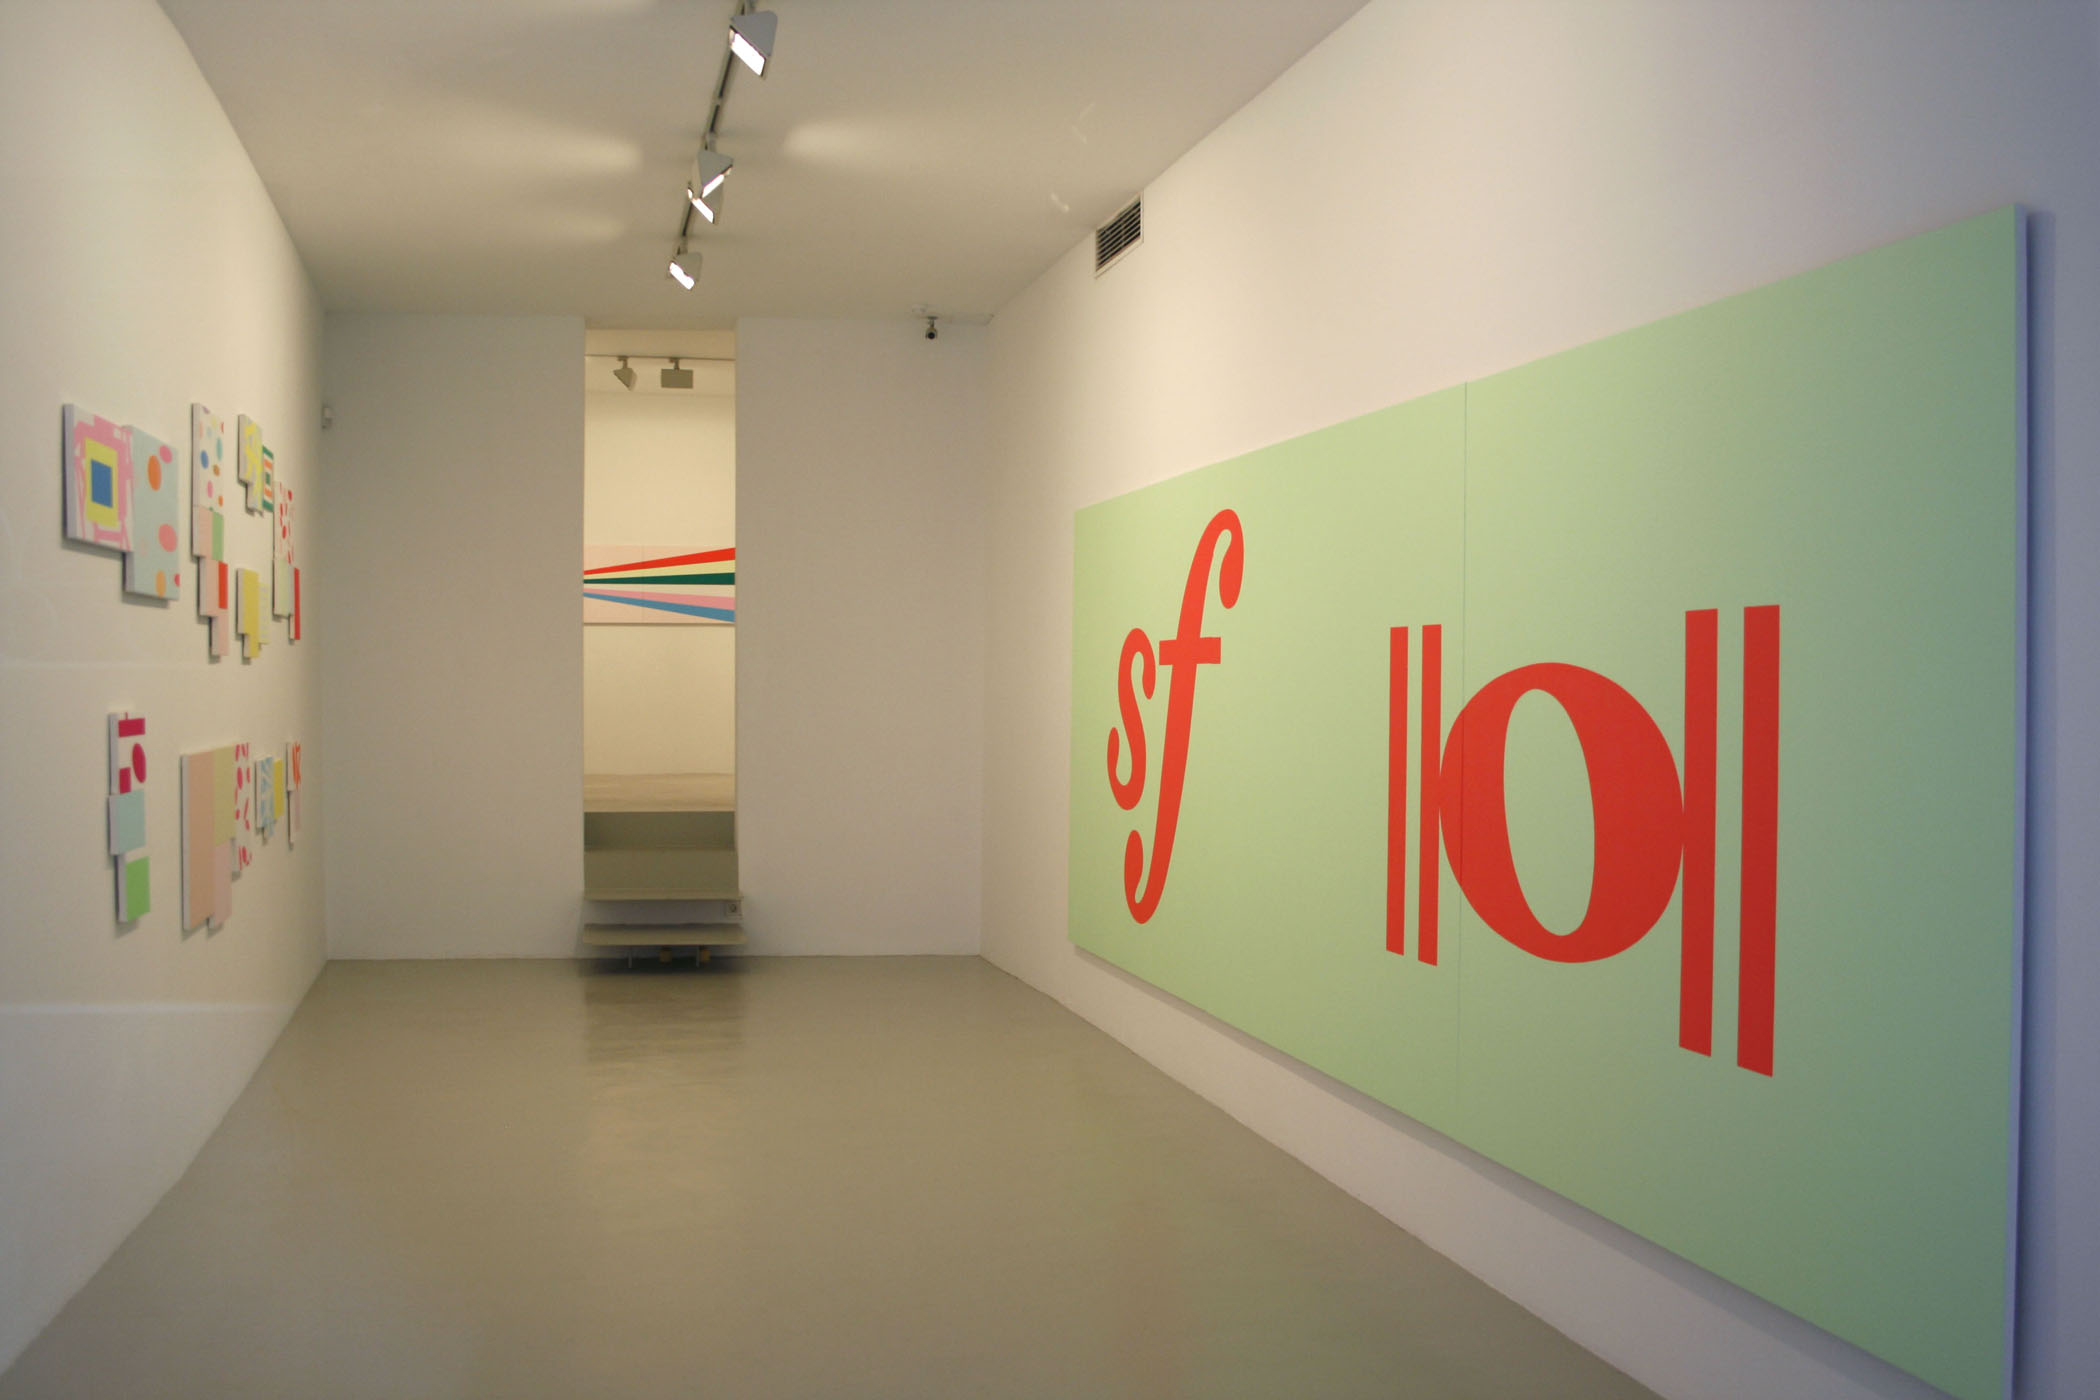 Exhibition view from Mitsuo Miura, 2008